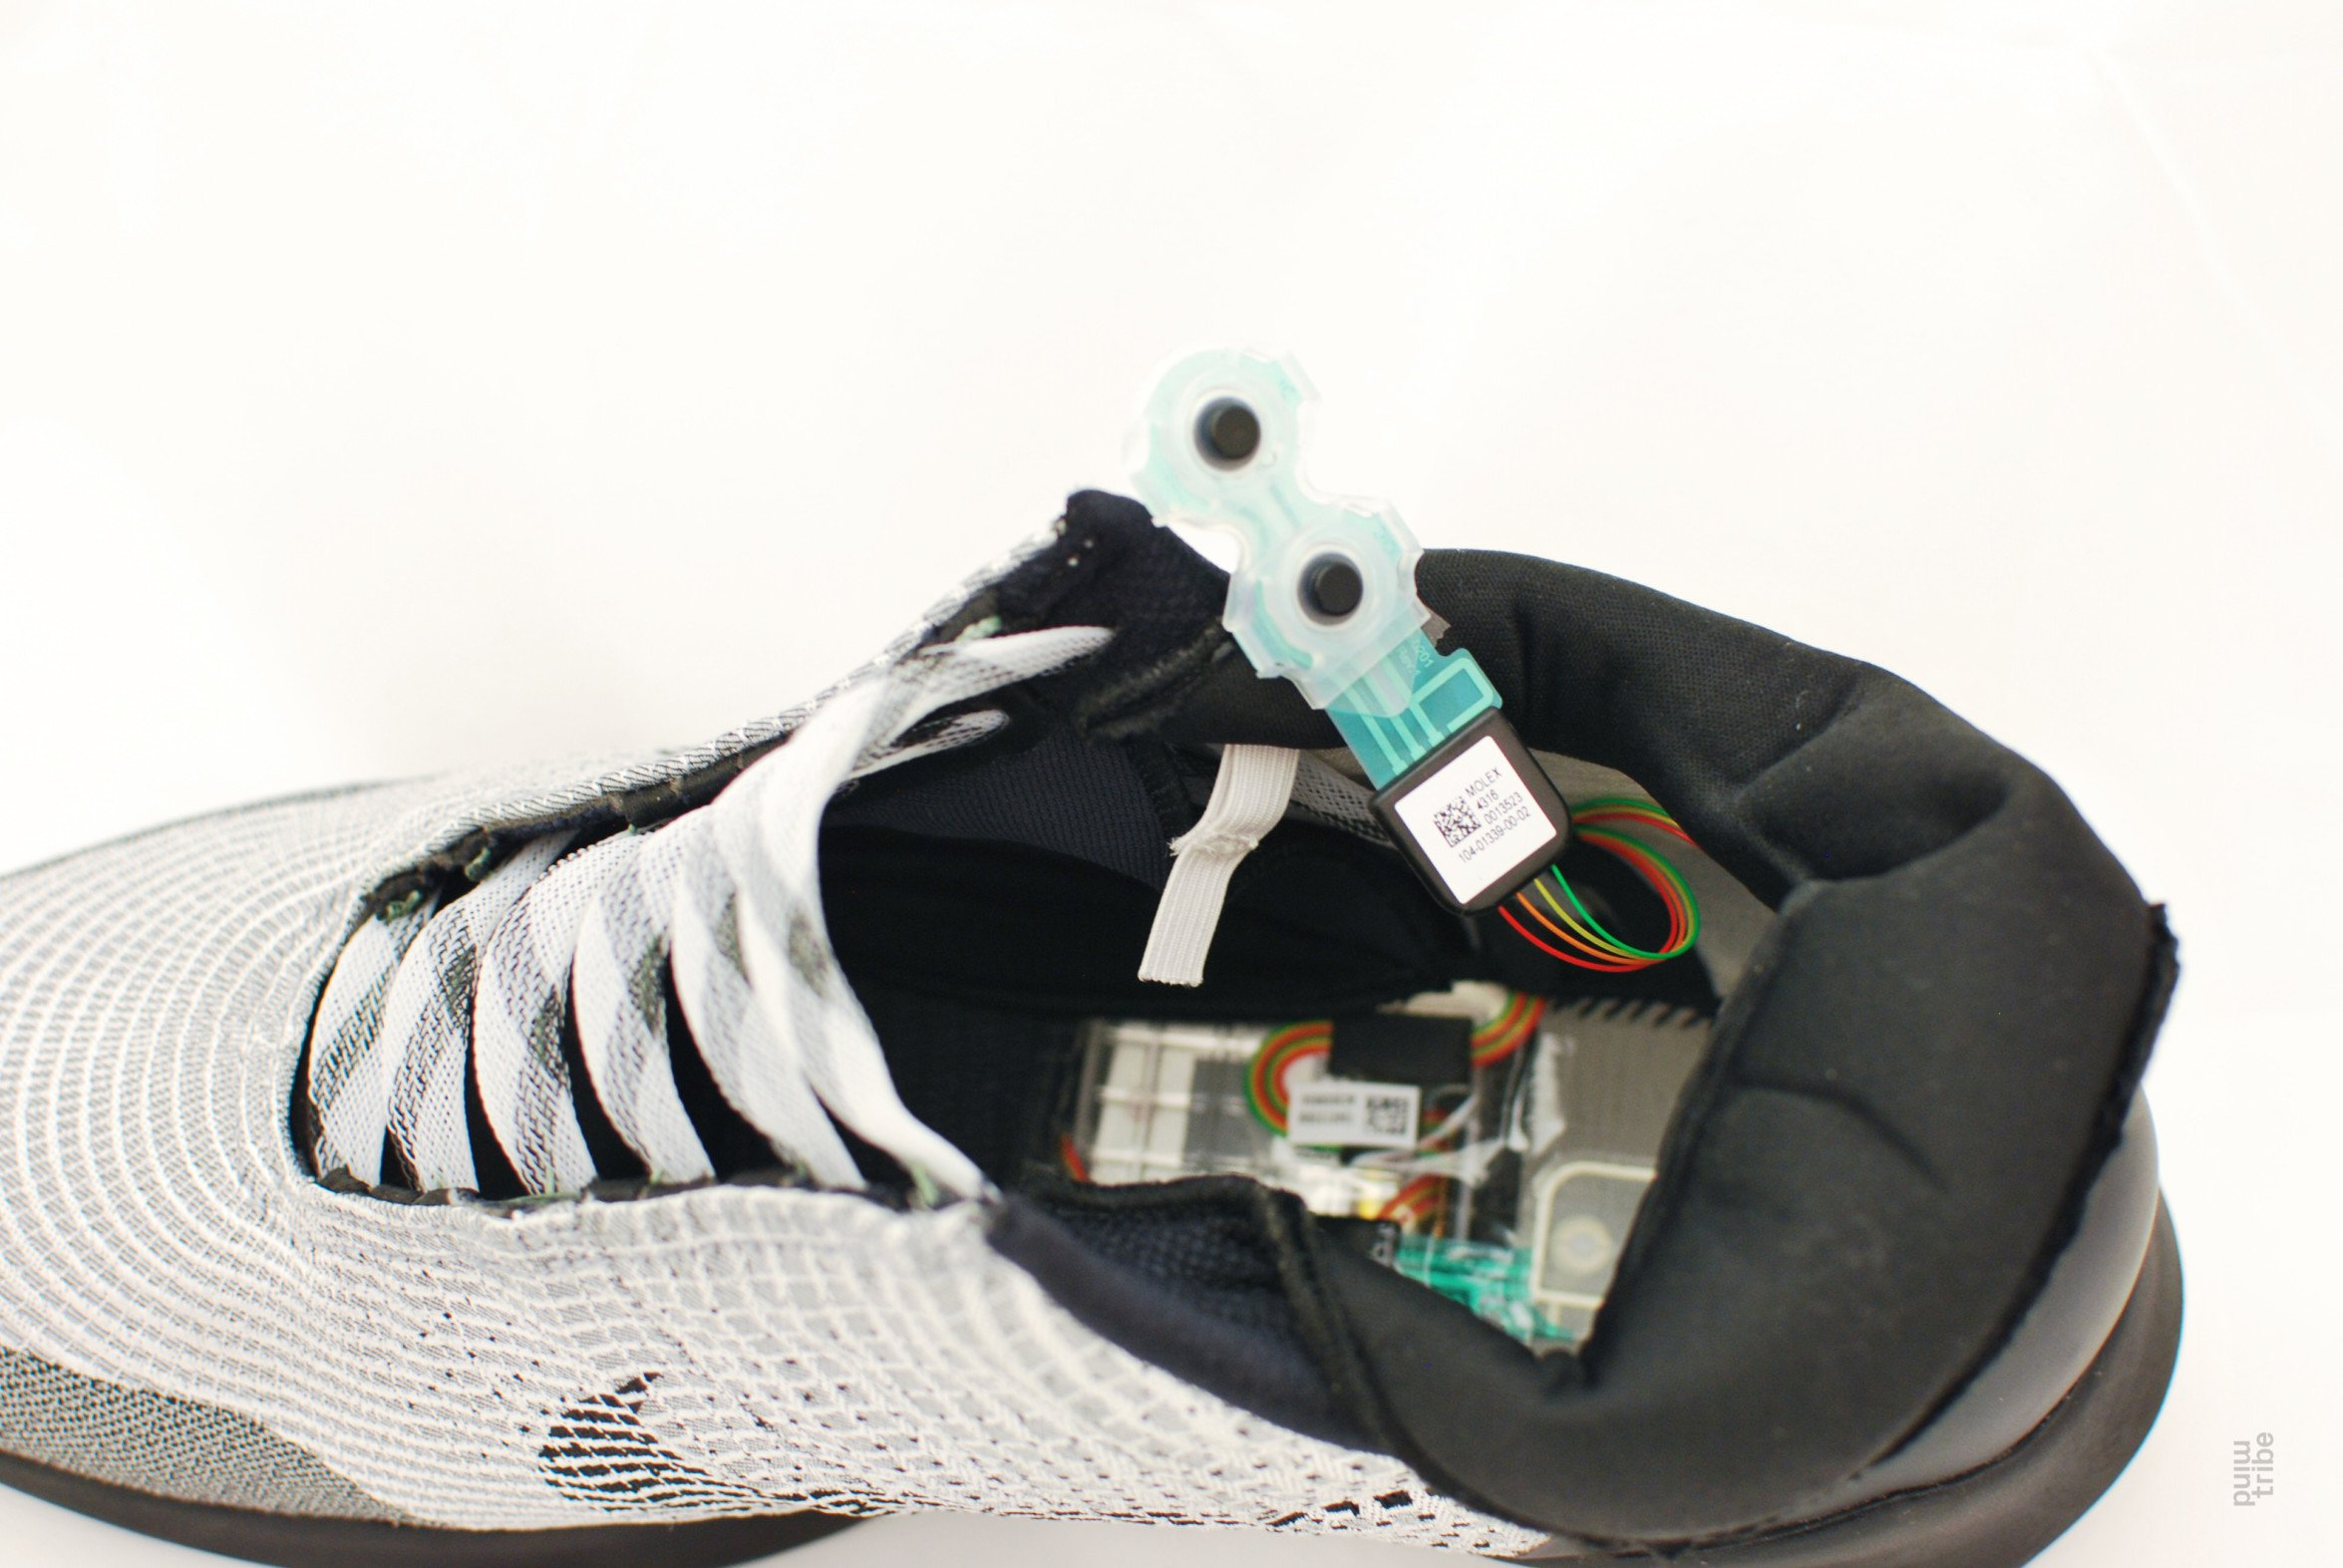 A Nike HyperAdapt teardown might hint at what's to come for the self